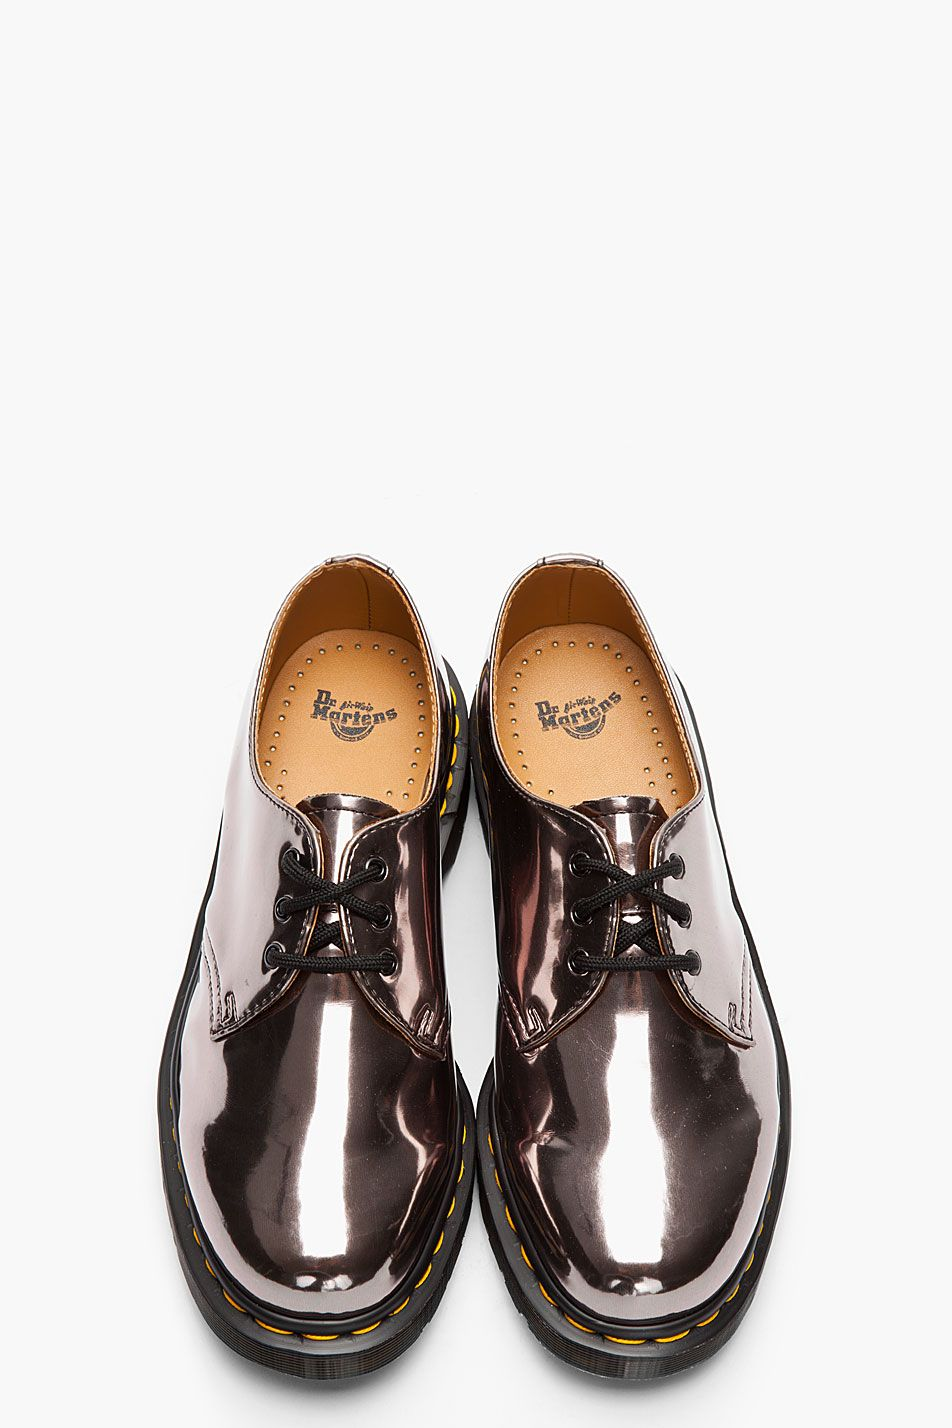 Dr Martens Metallic Pewter Patent 1461 3 Eye Gibson Shoes Shoes Martens Dr Martens Boots